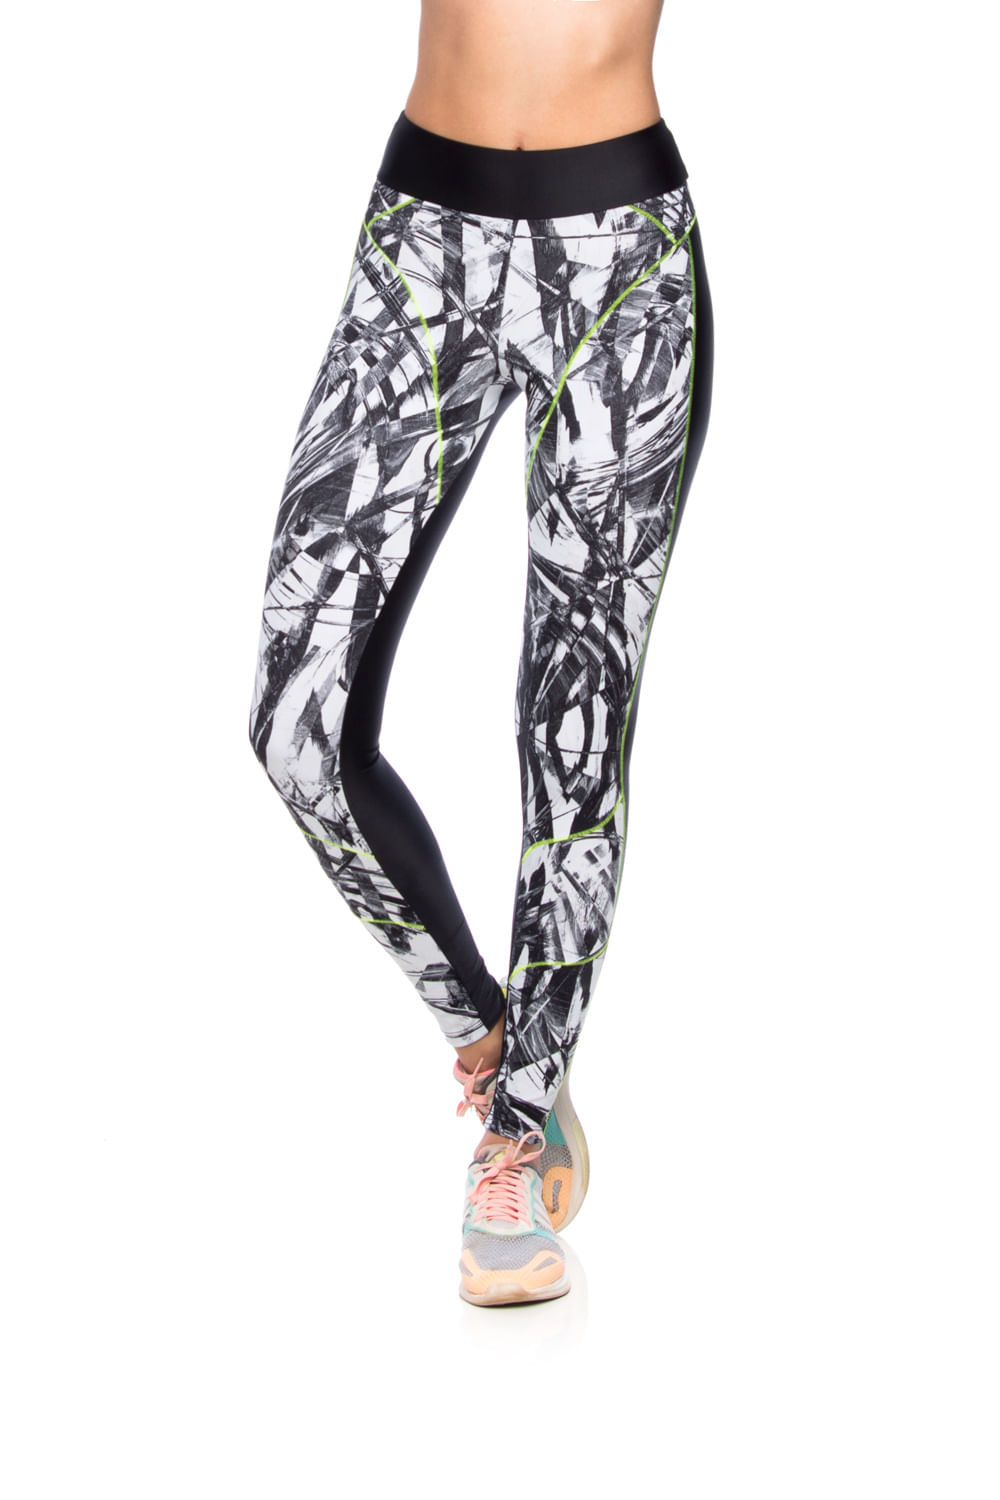 legging-fitness-estampado-abstrato-moda-academia--1-